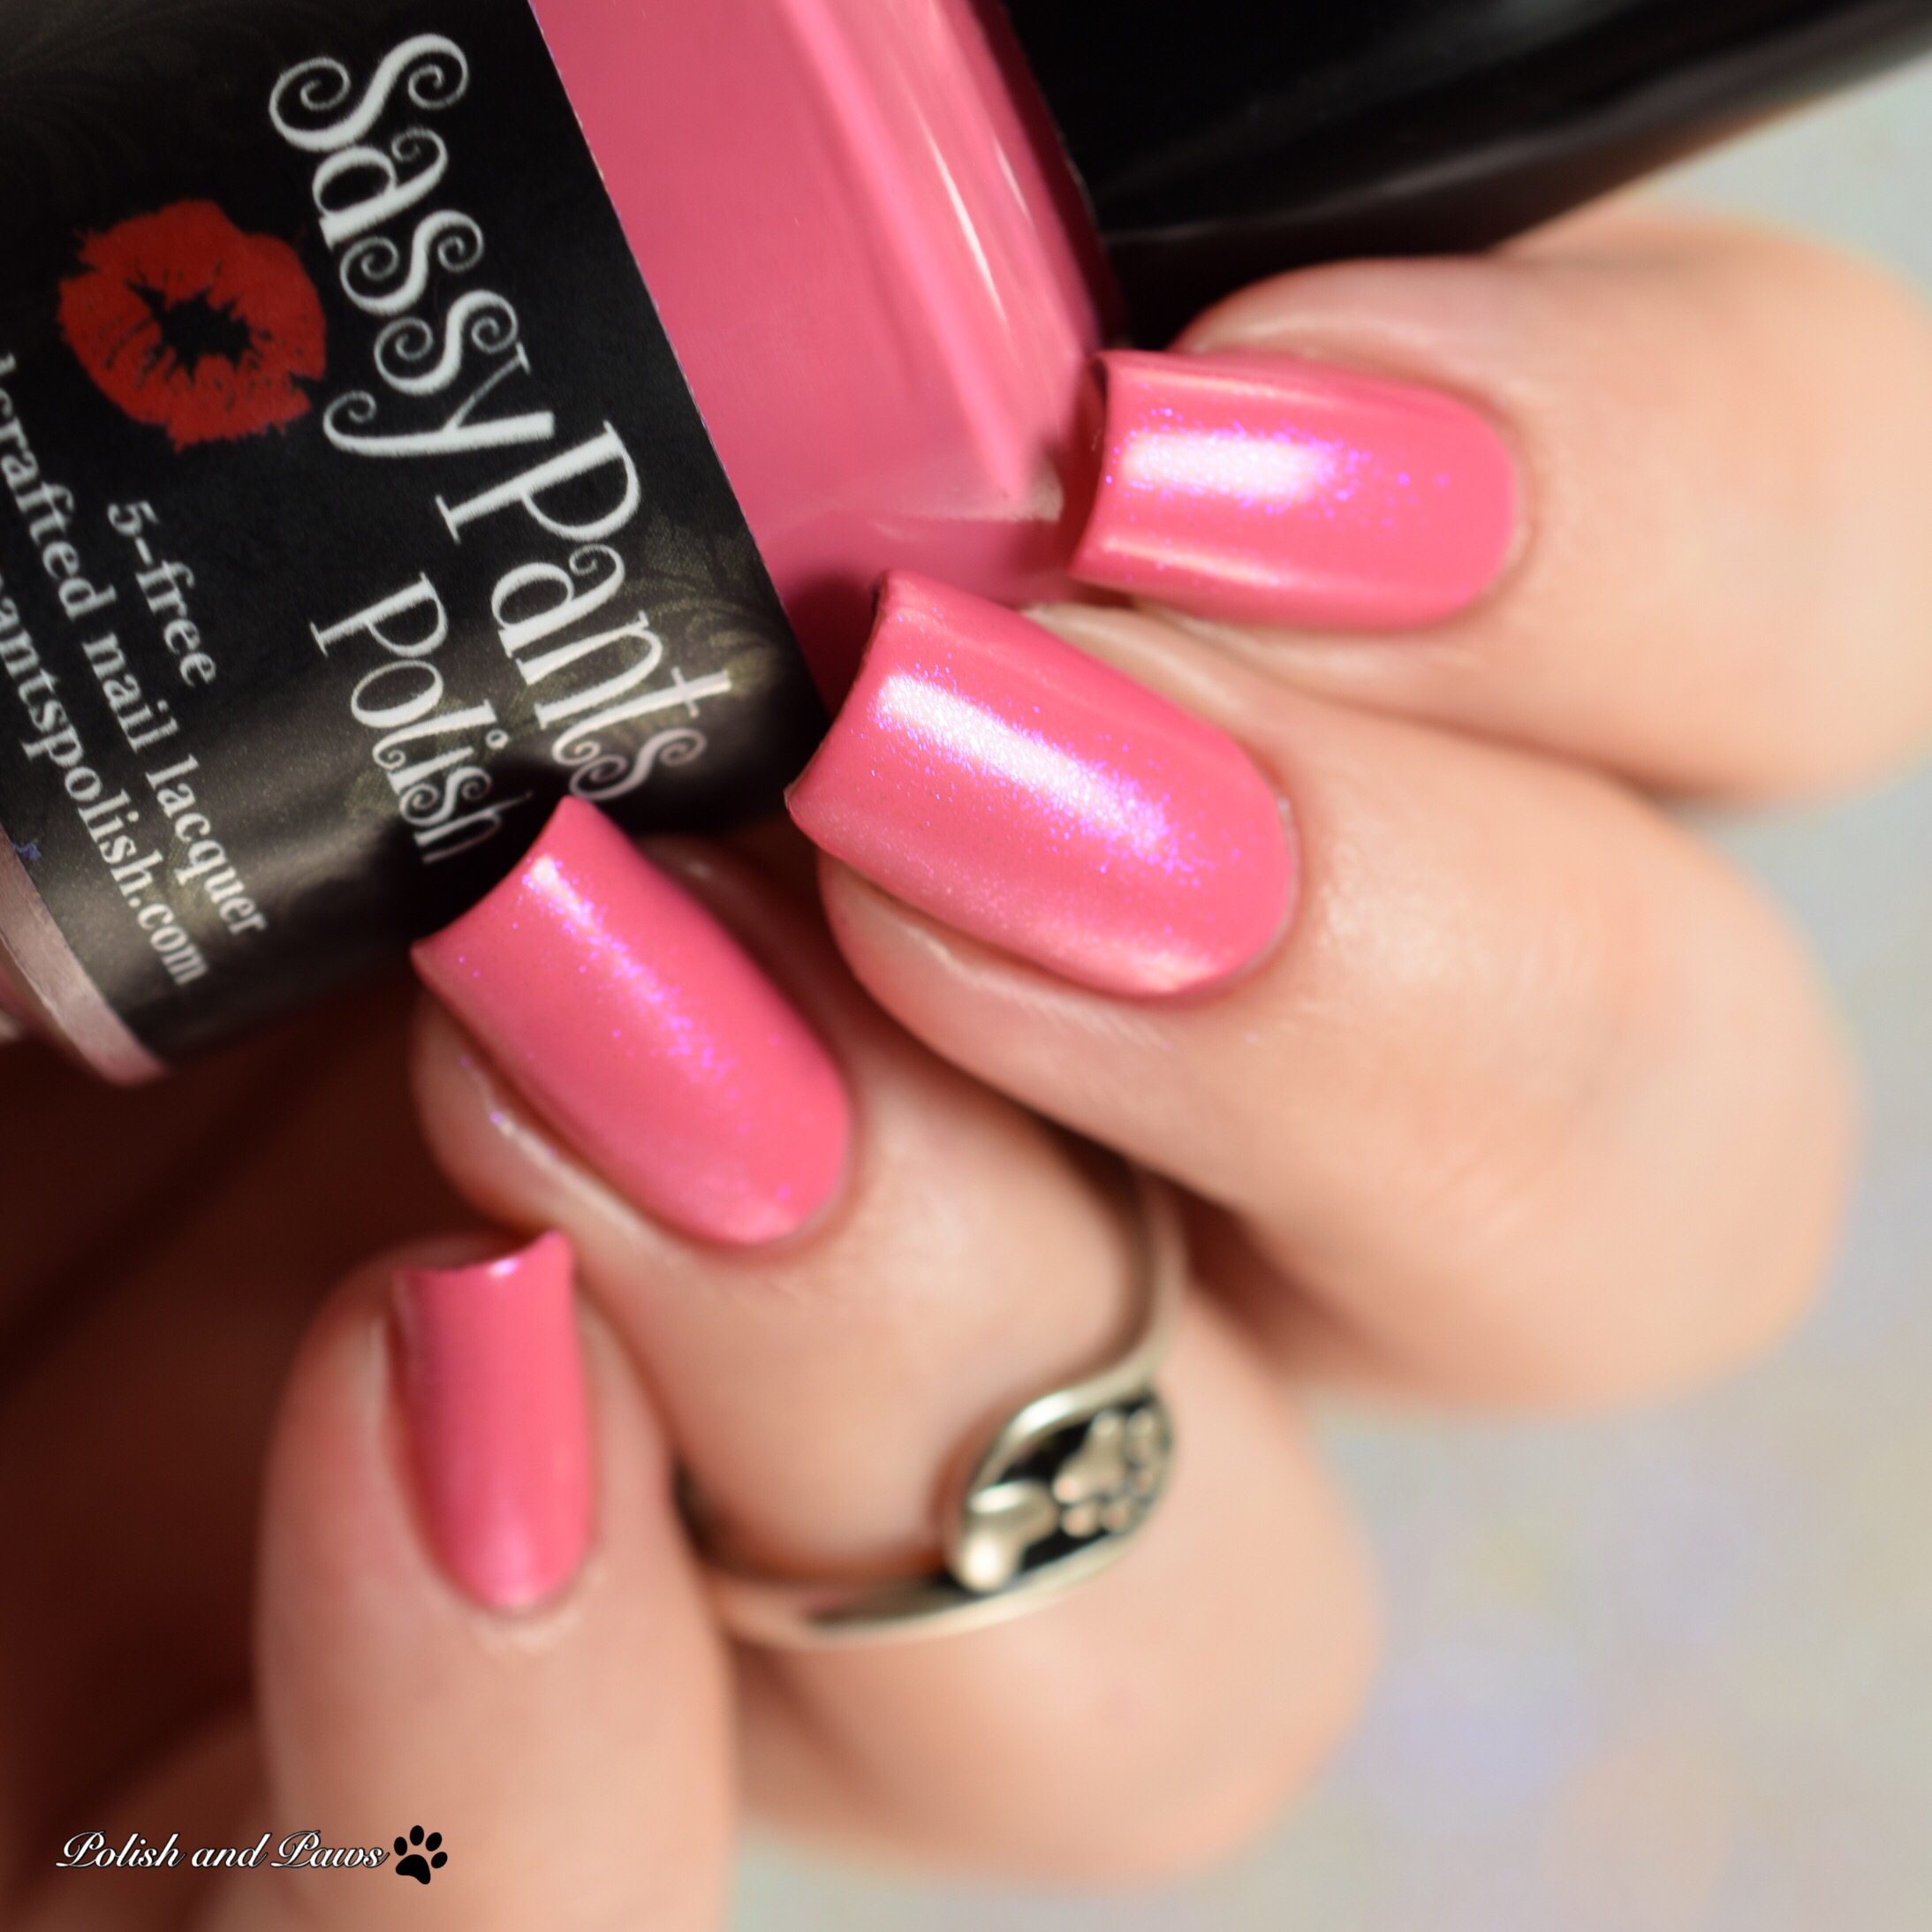 Sassy Pants Polish Forever Yours layered over French Kiss